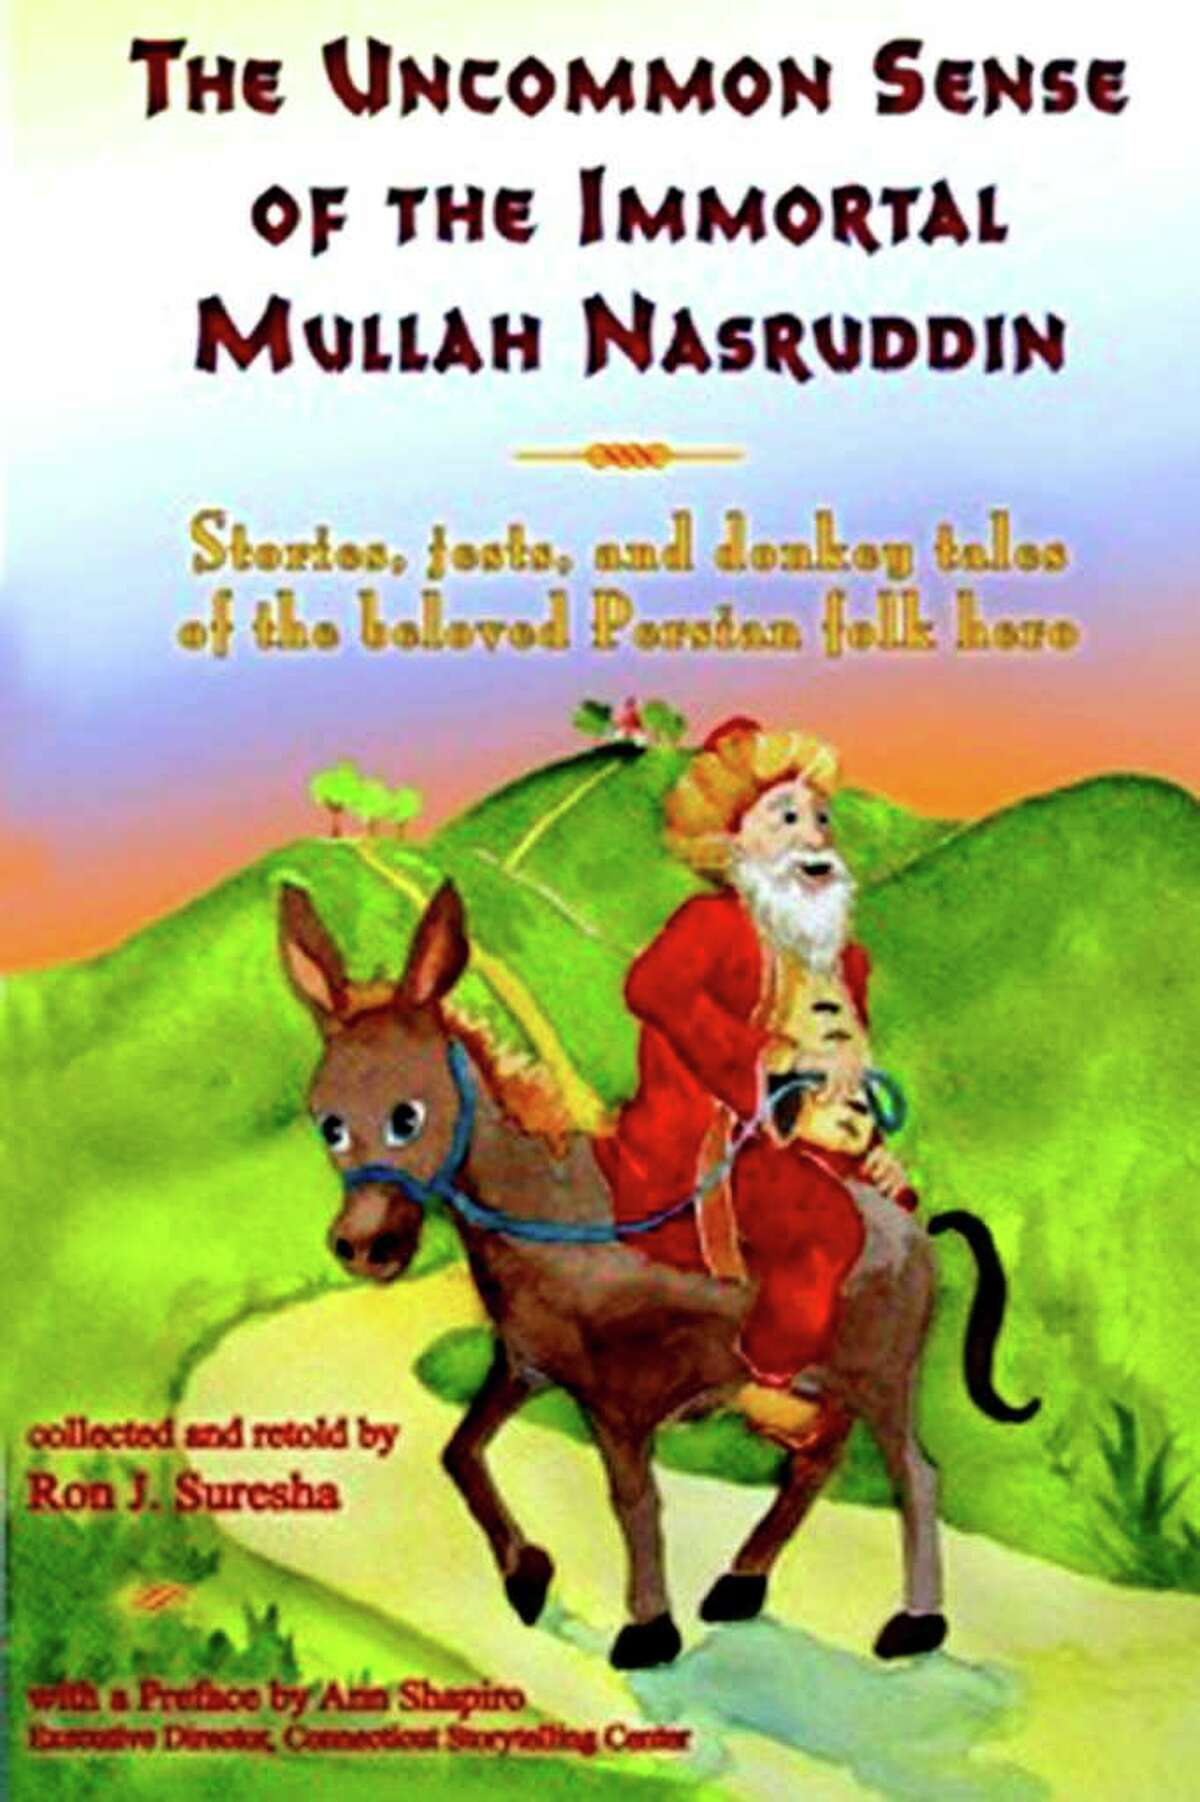 SPECTRUM/Ron J. Sureshaís ìThe Uncommon Sense of the Immortal Mullah Nasruddinî has been honored in an annual national refereed competition for valued resources in the storytelling collections (all ages) category.